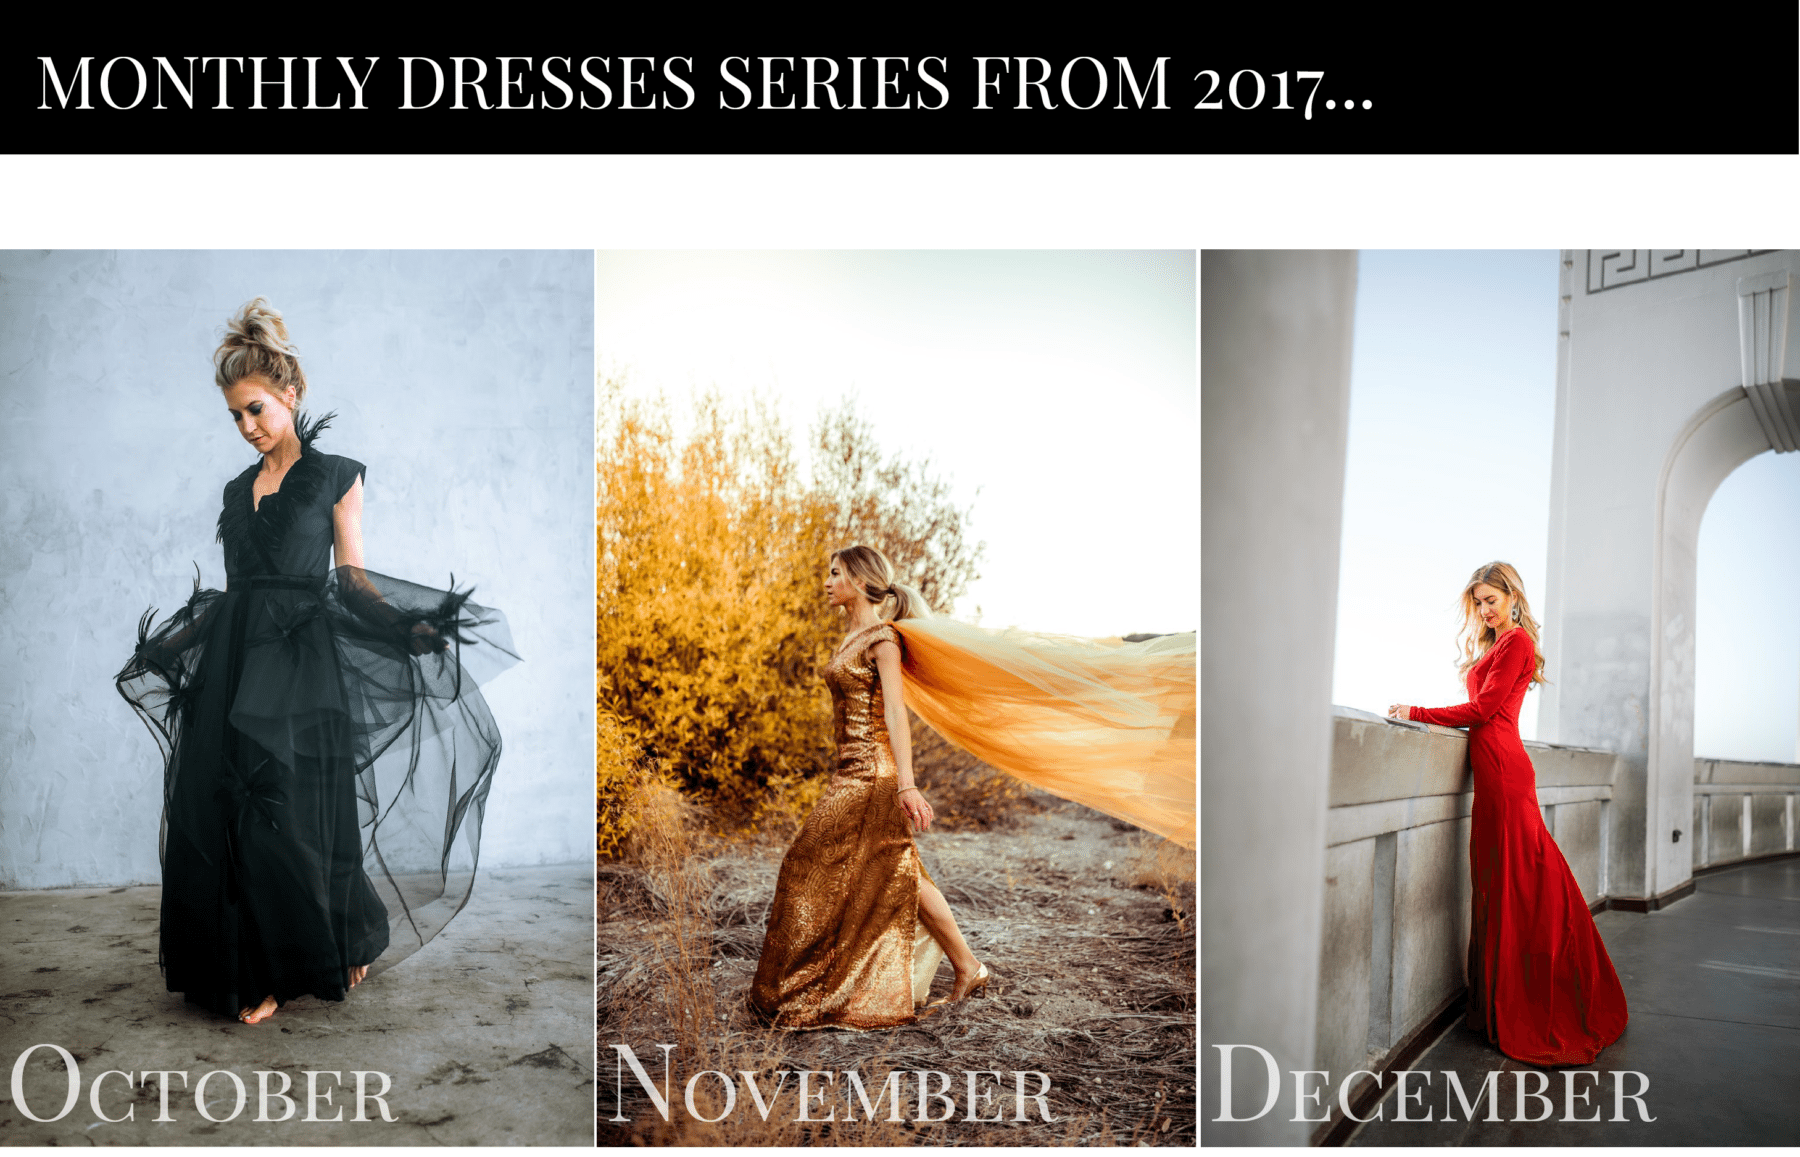 The Monthly Dress Series dresses from 2017